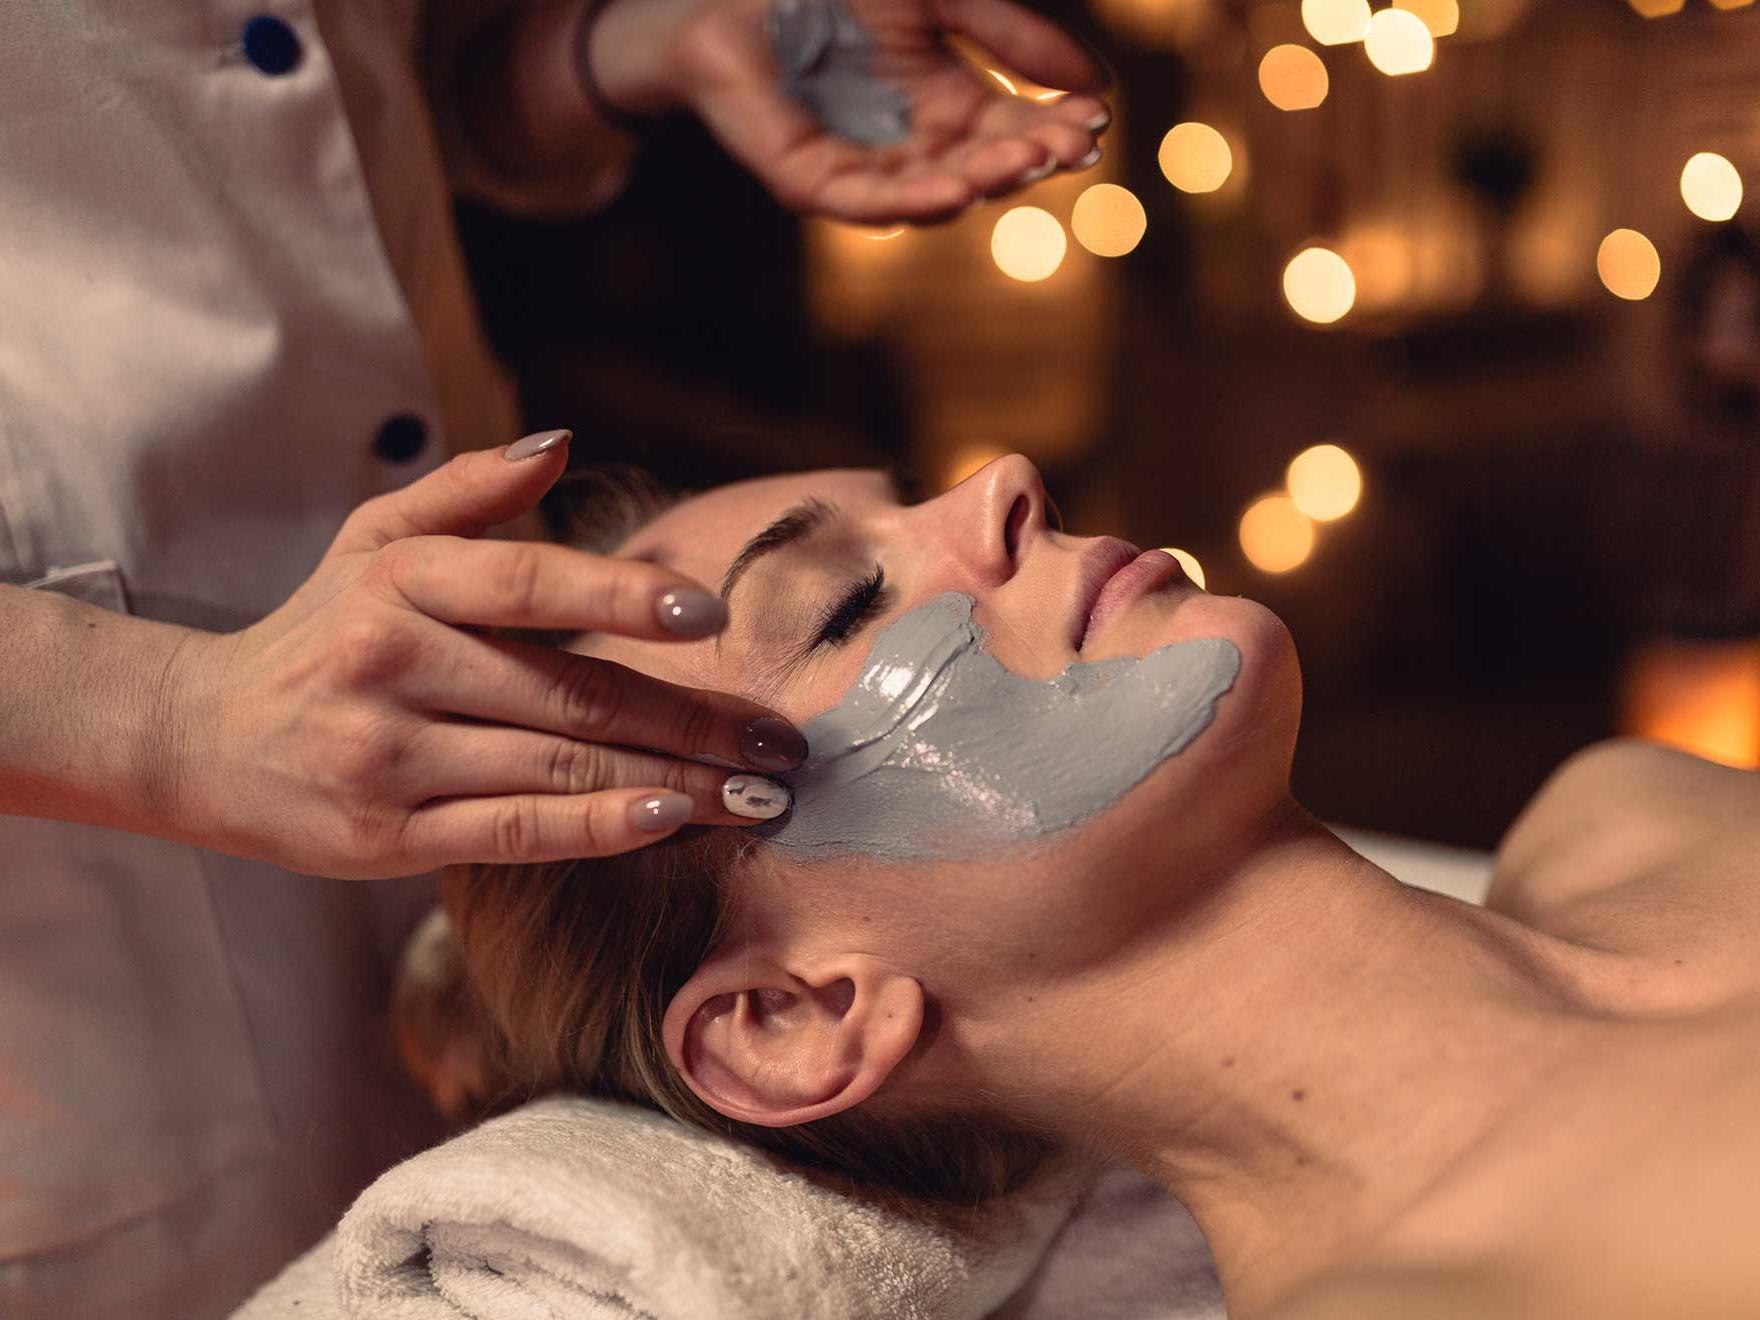 Lady applying a face mask